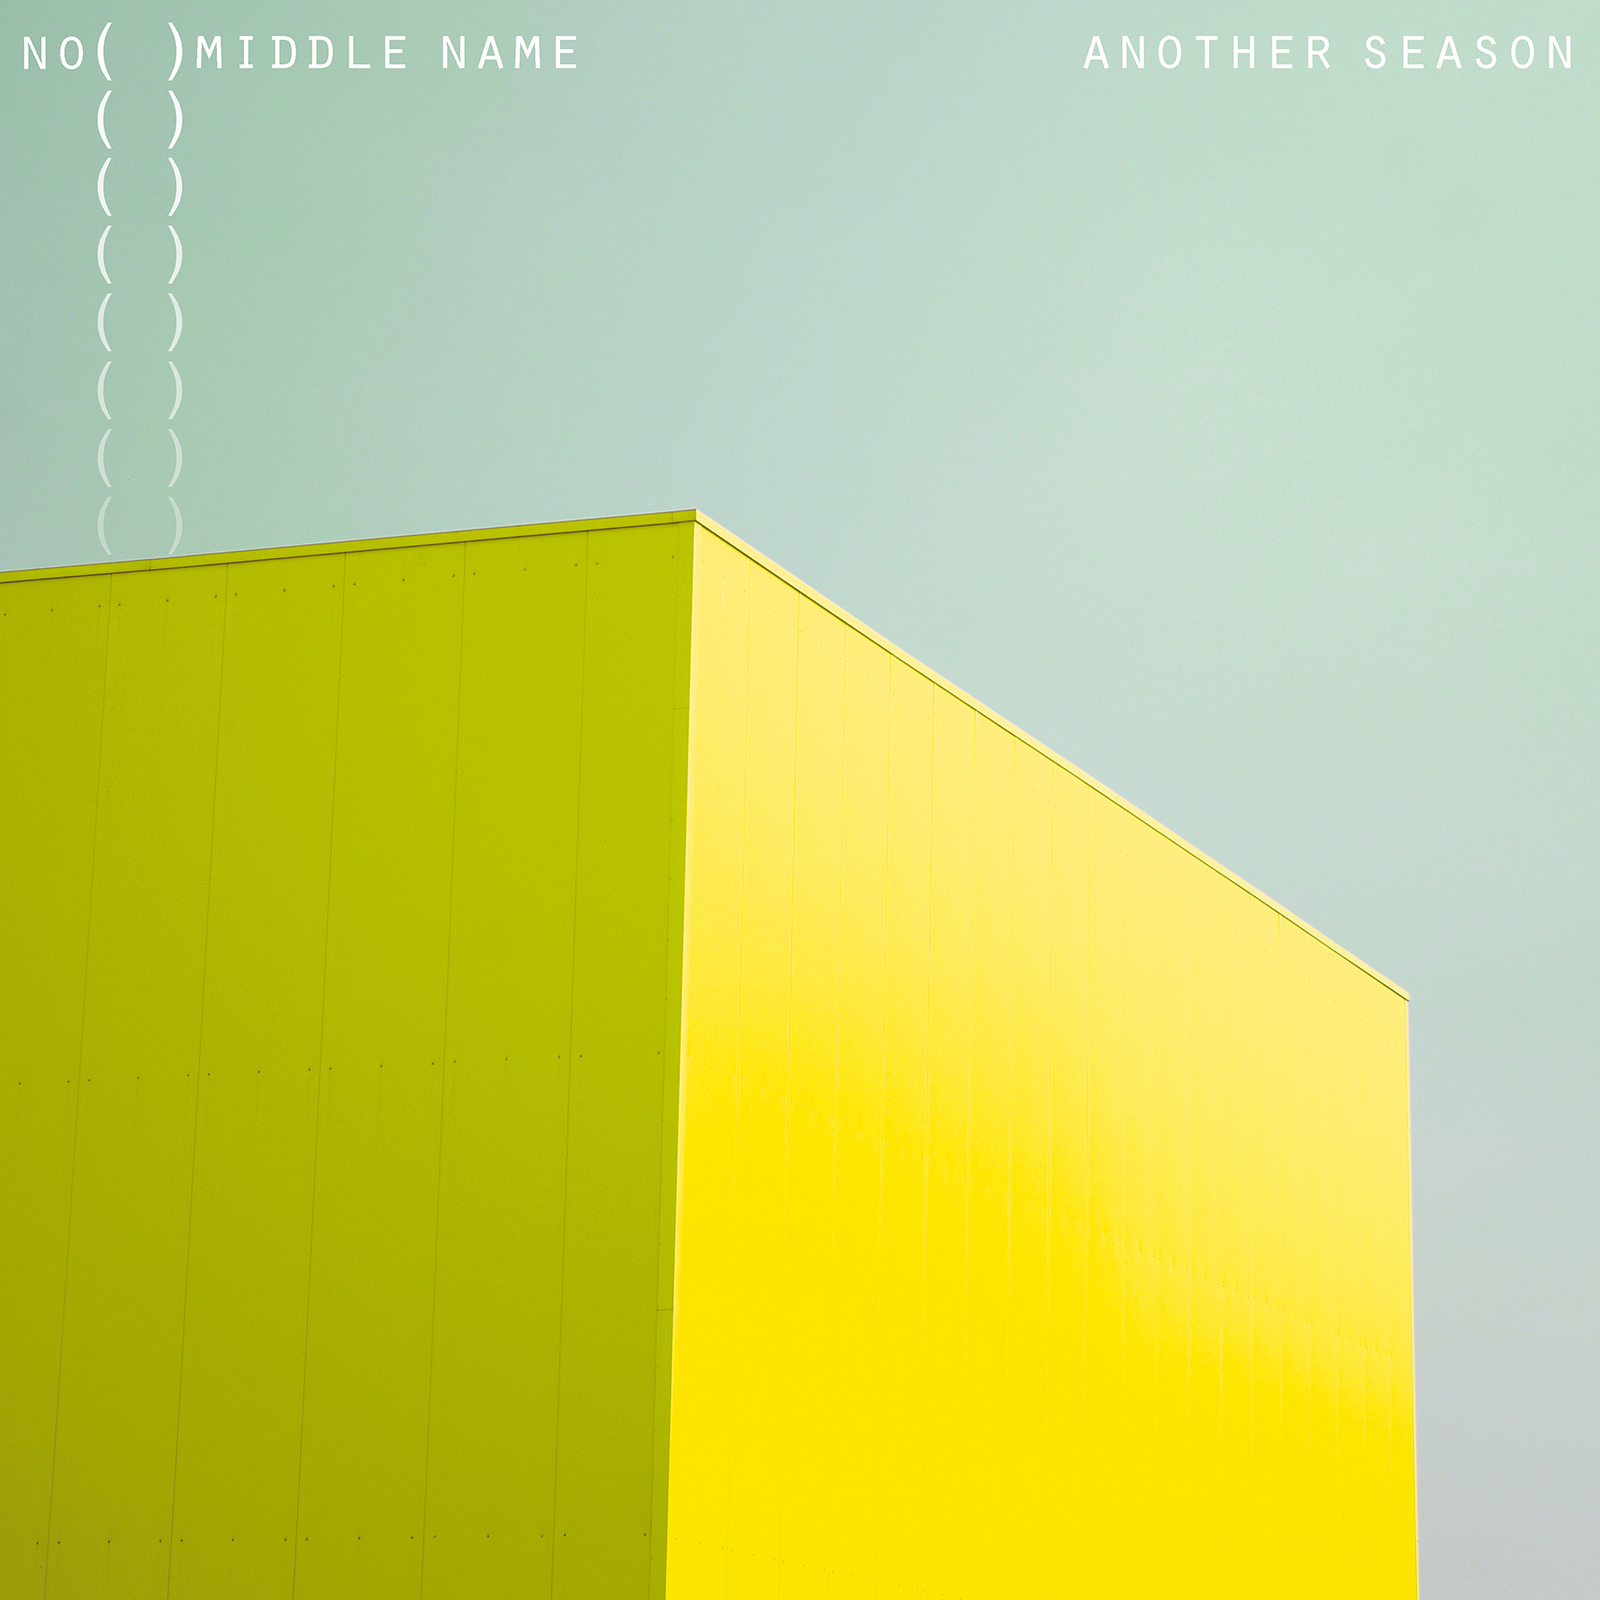 Another Season - No Middle Name